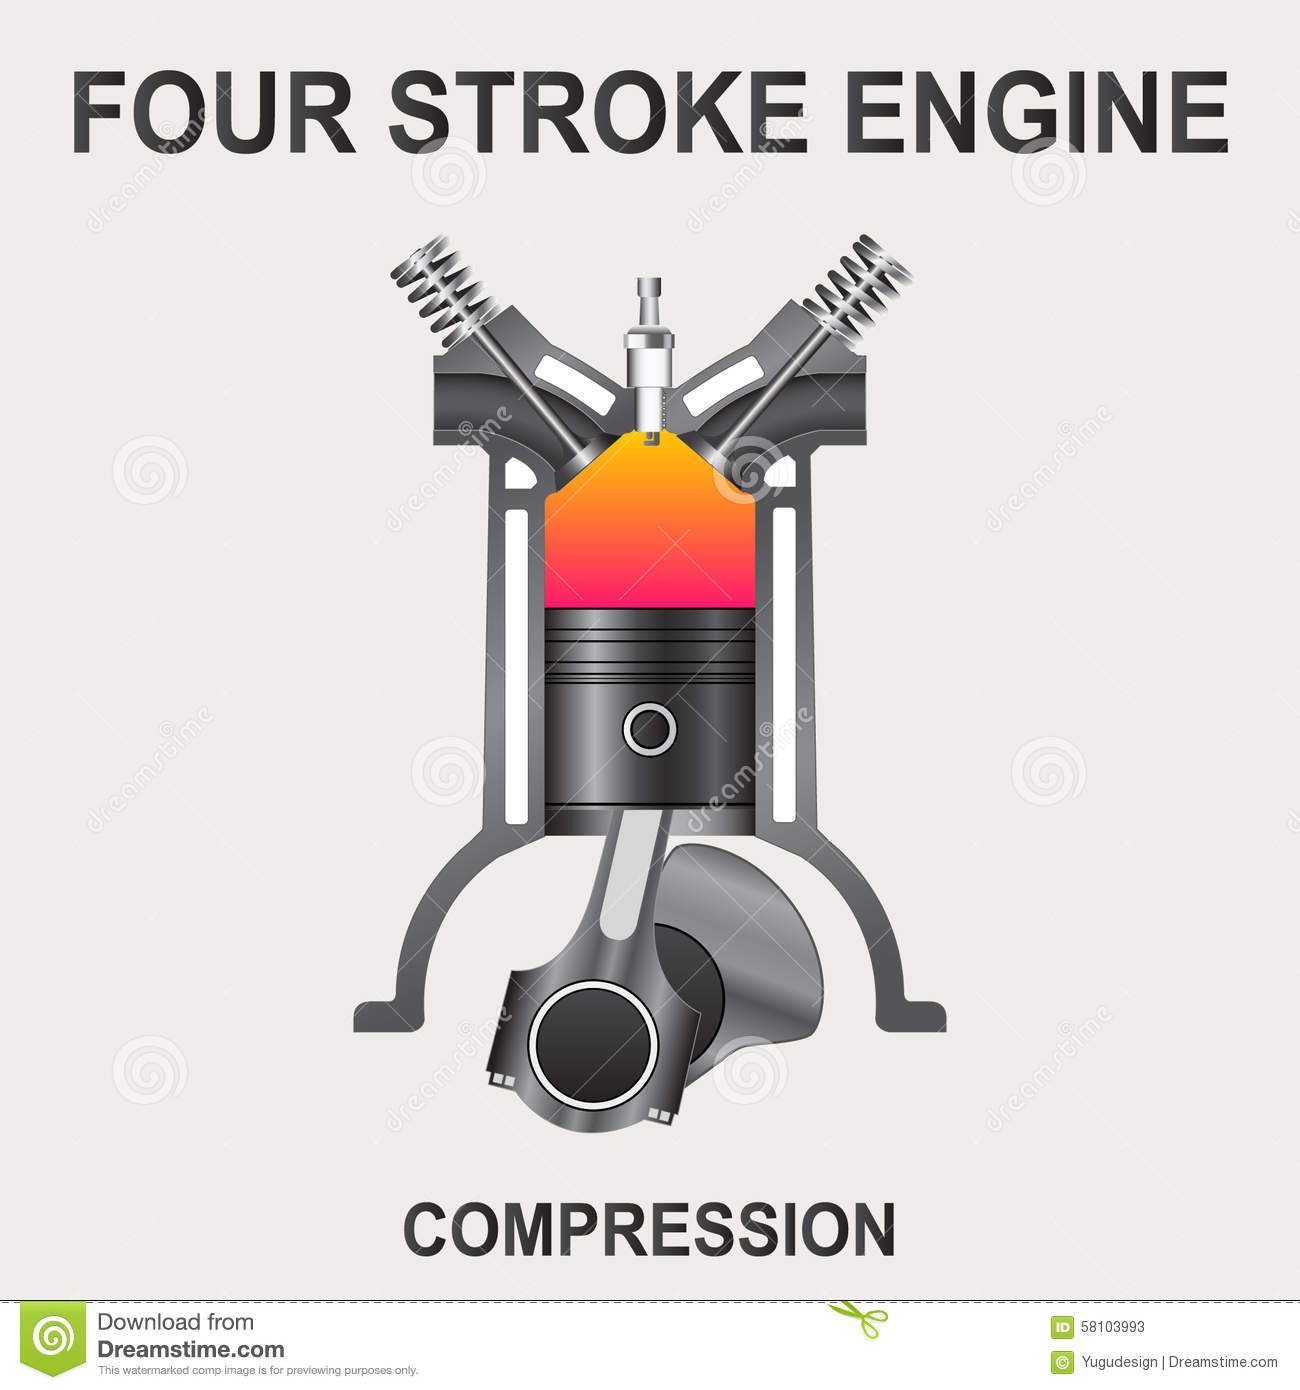 Vector Illustration Of Piston Four Stroke Engine Compression